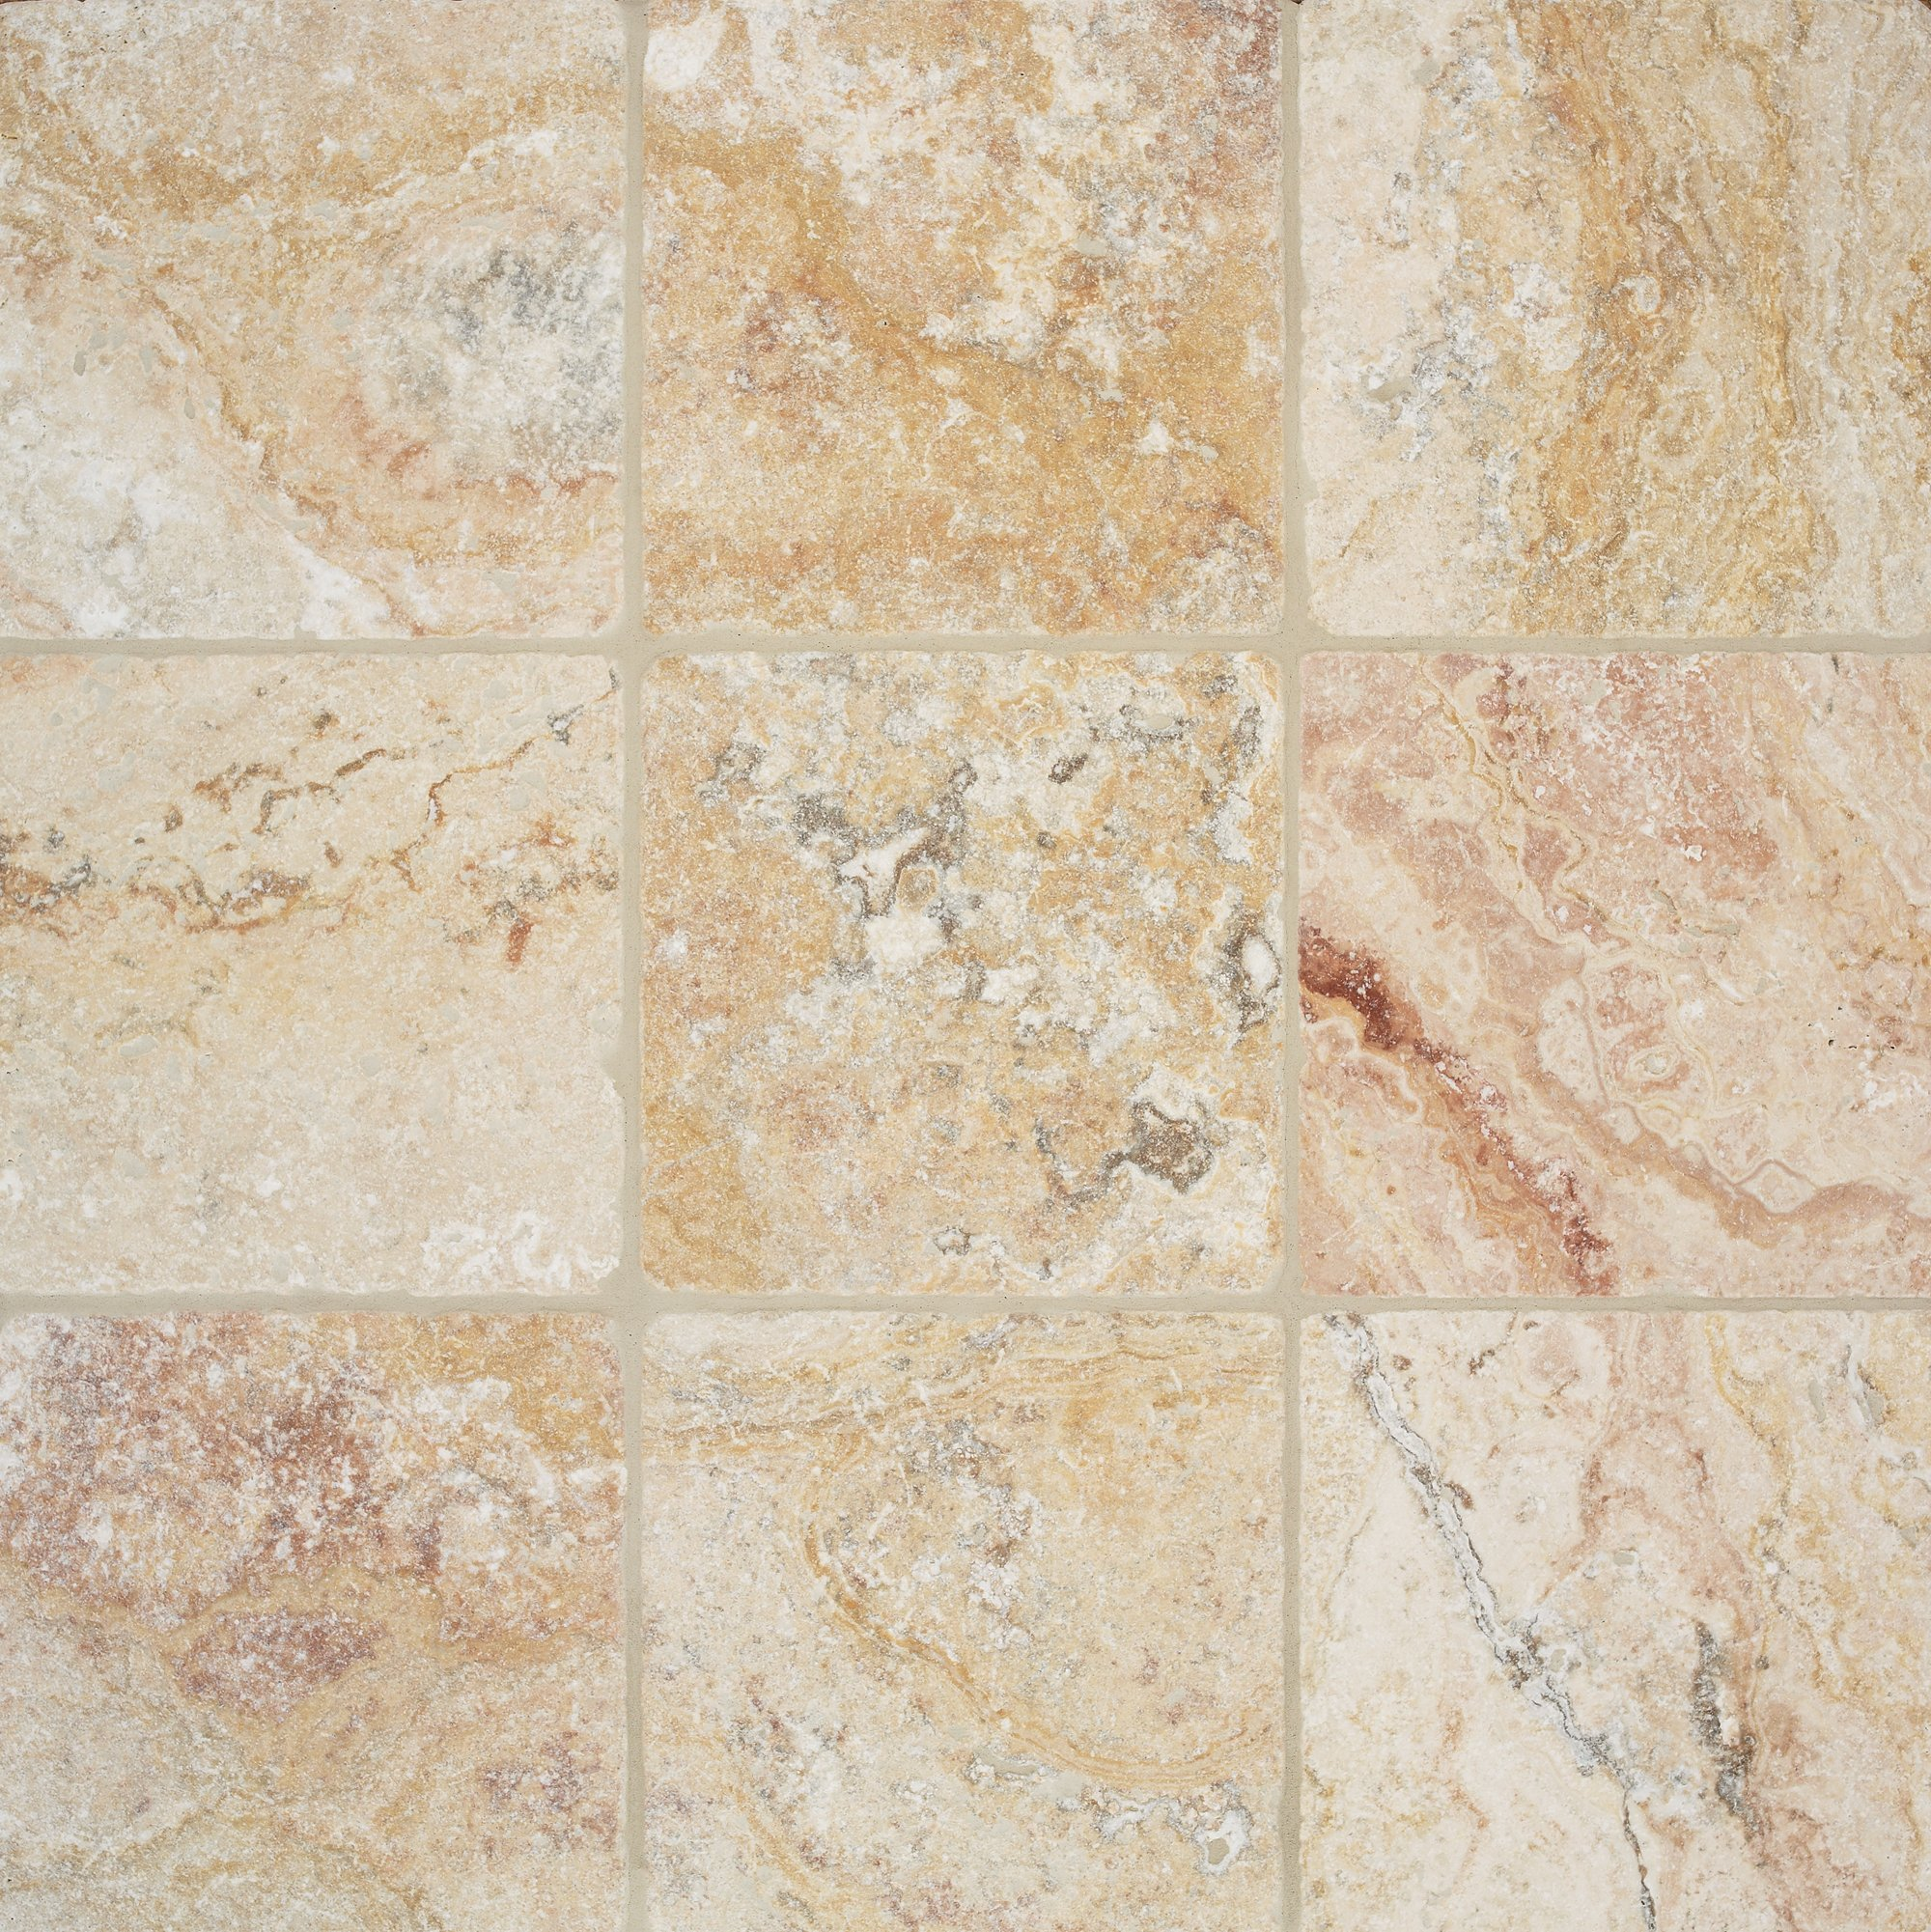 Arizona Tile 4 by 4-Inch Tumbled Travertine Tile, Scabos, 5-Total Square Feet